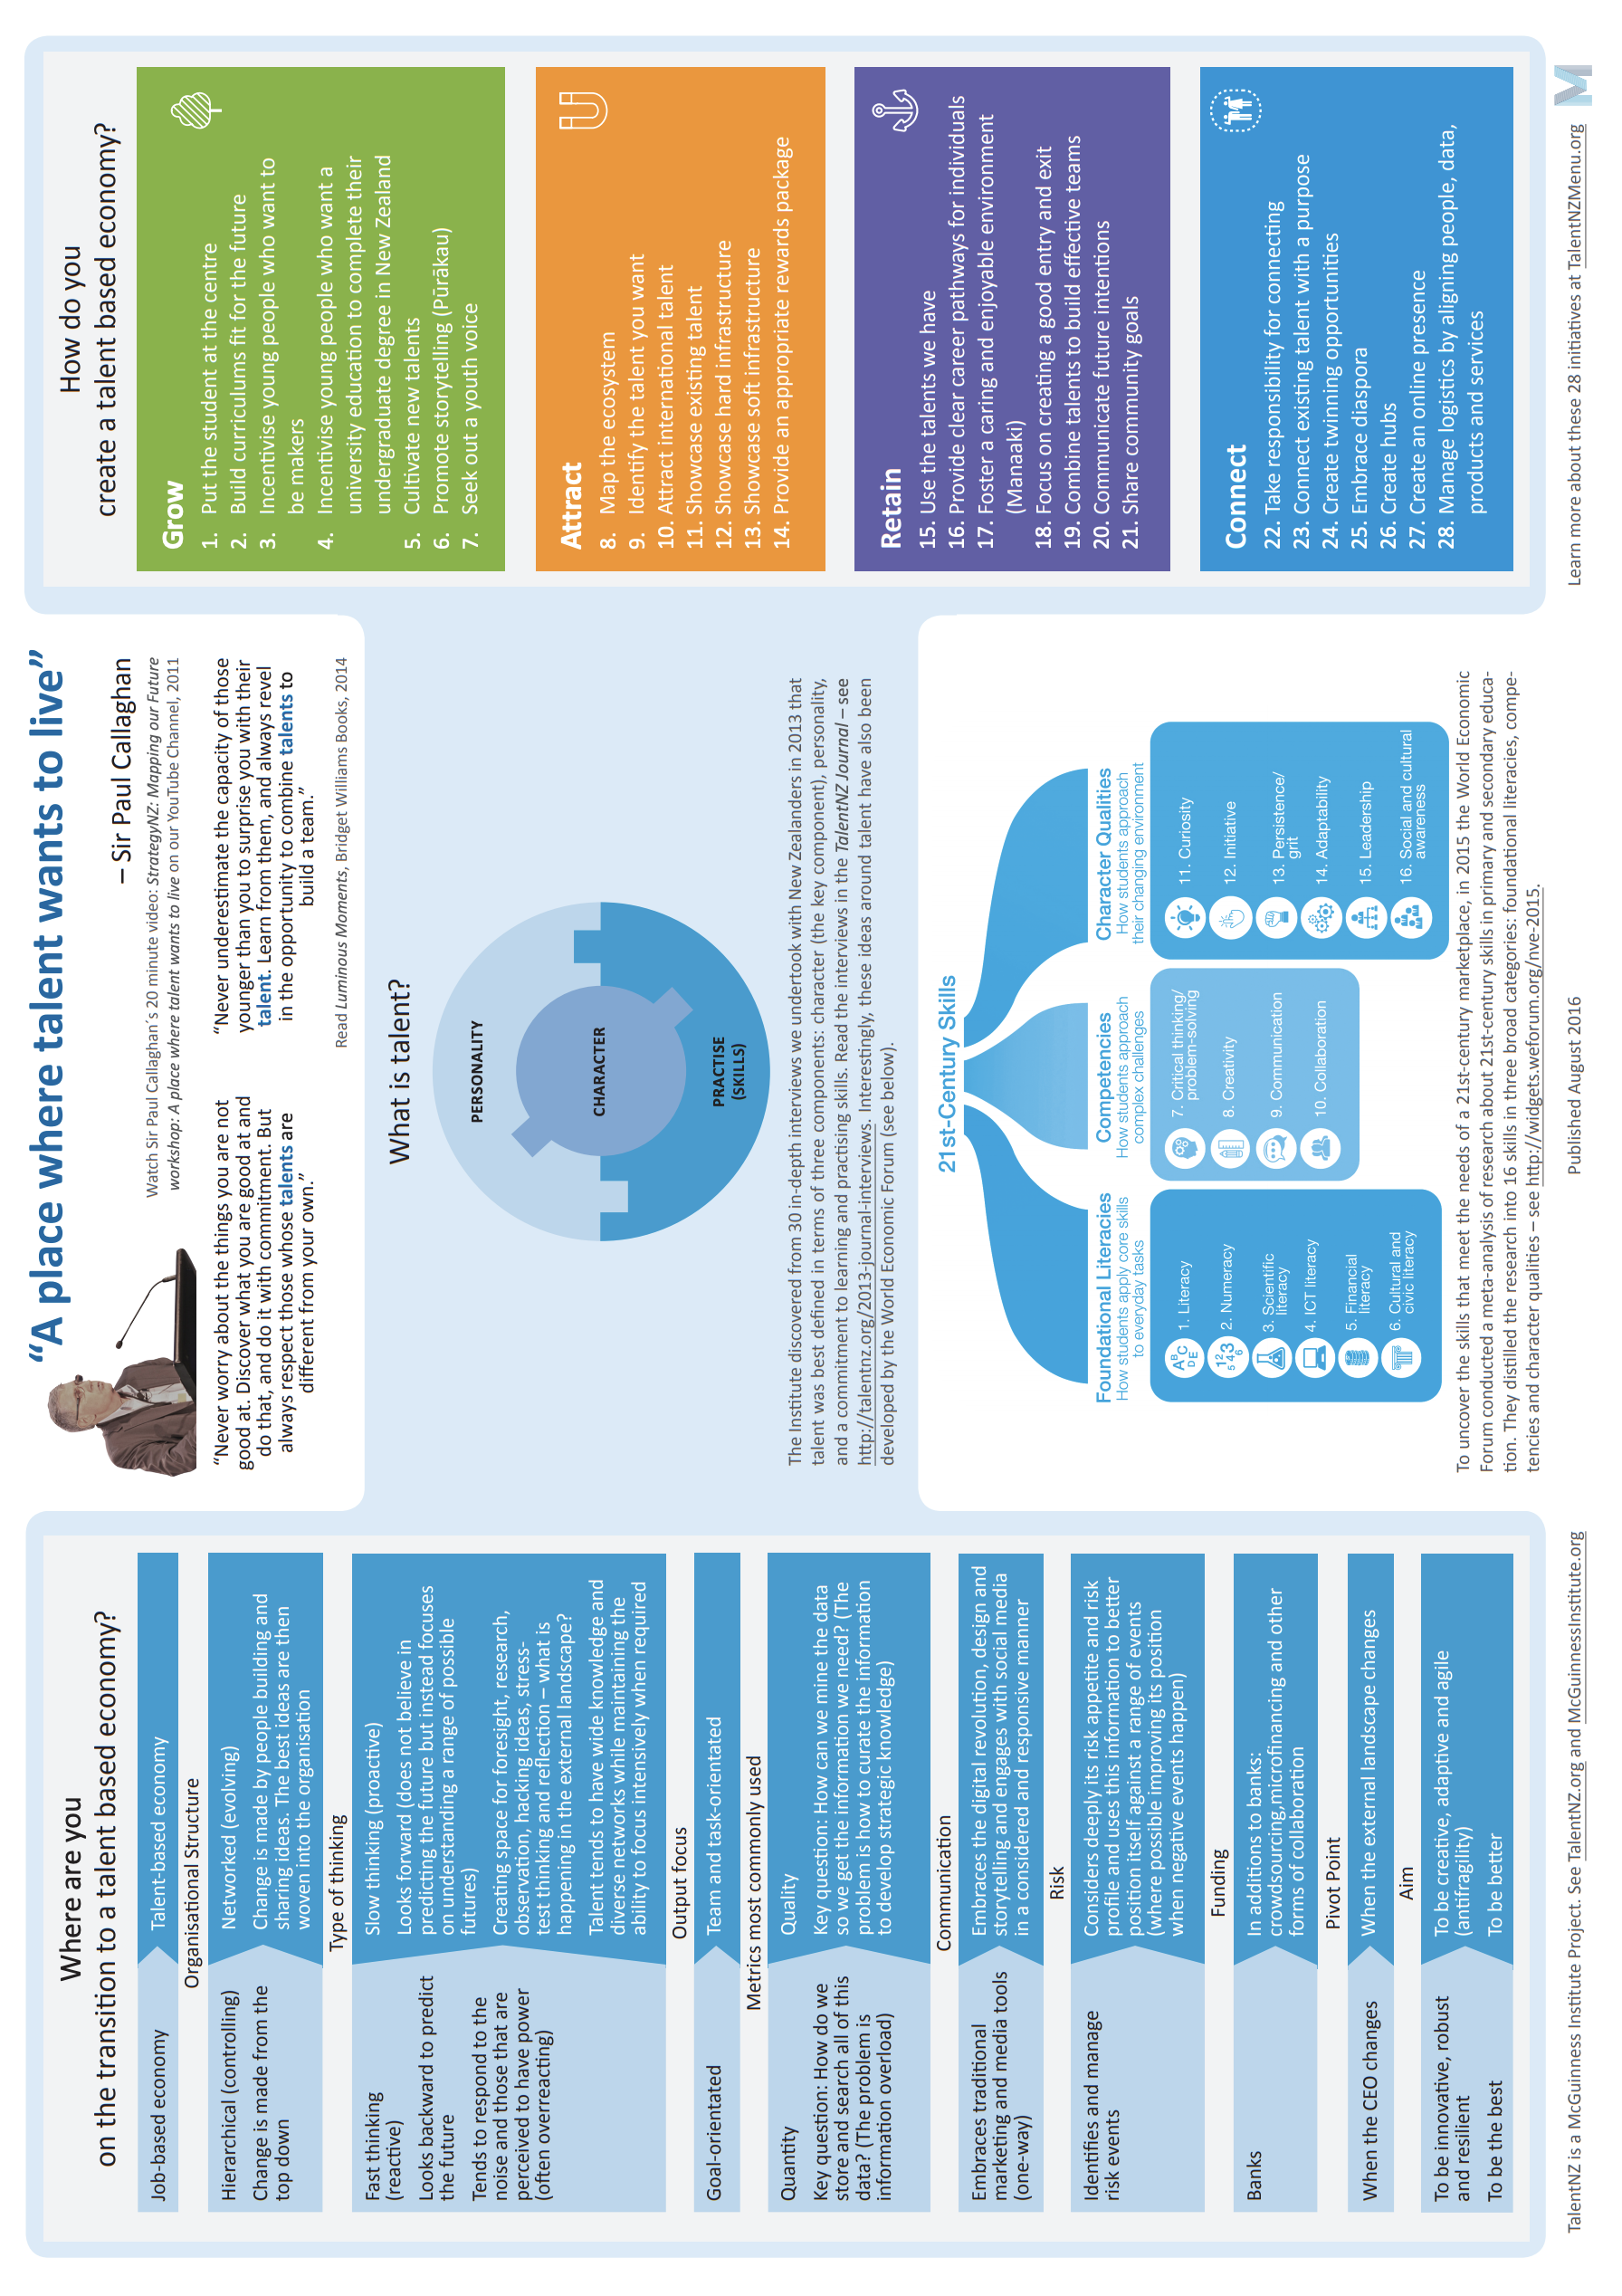 'A place where talent wants to live' Infographic